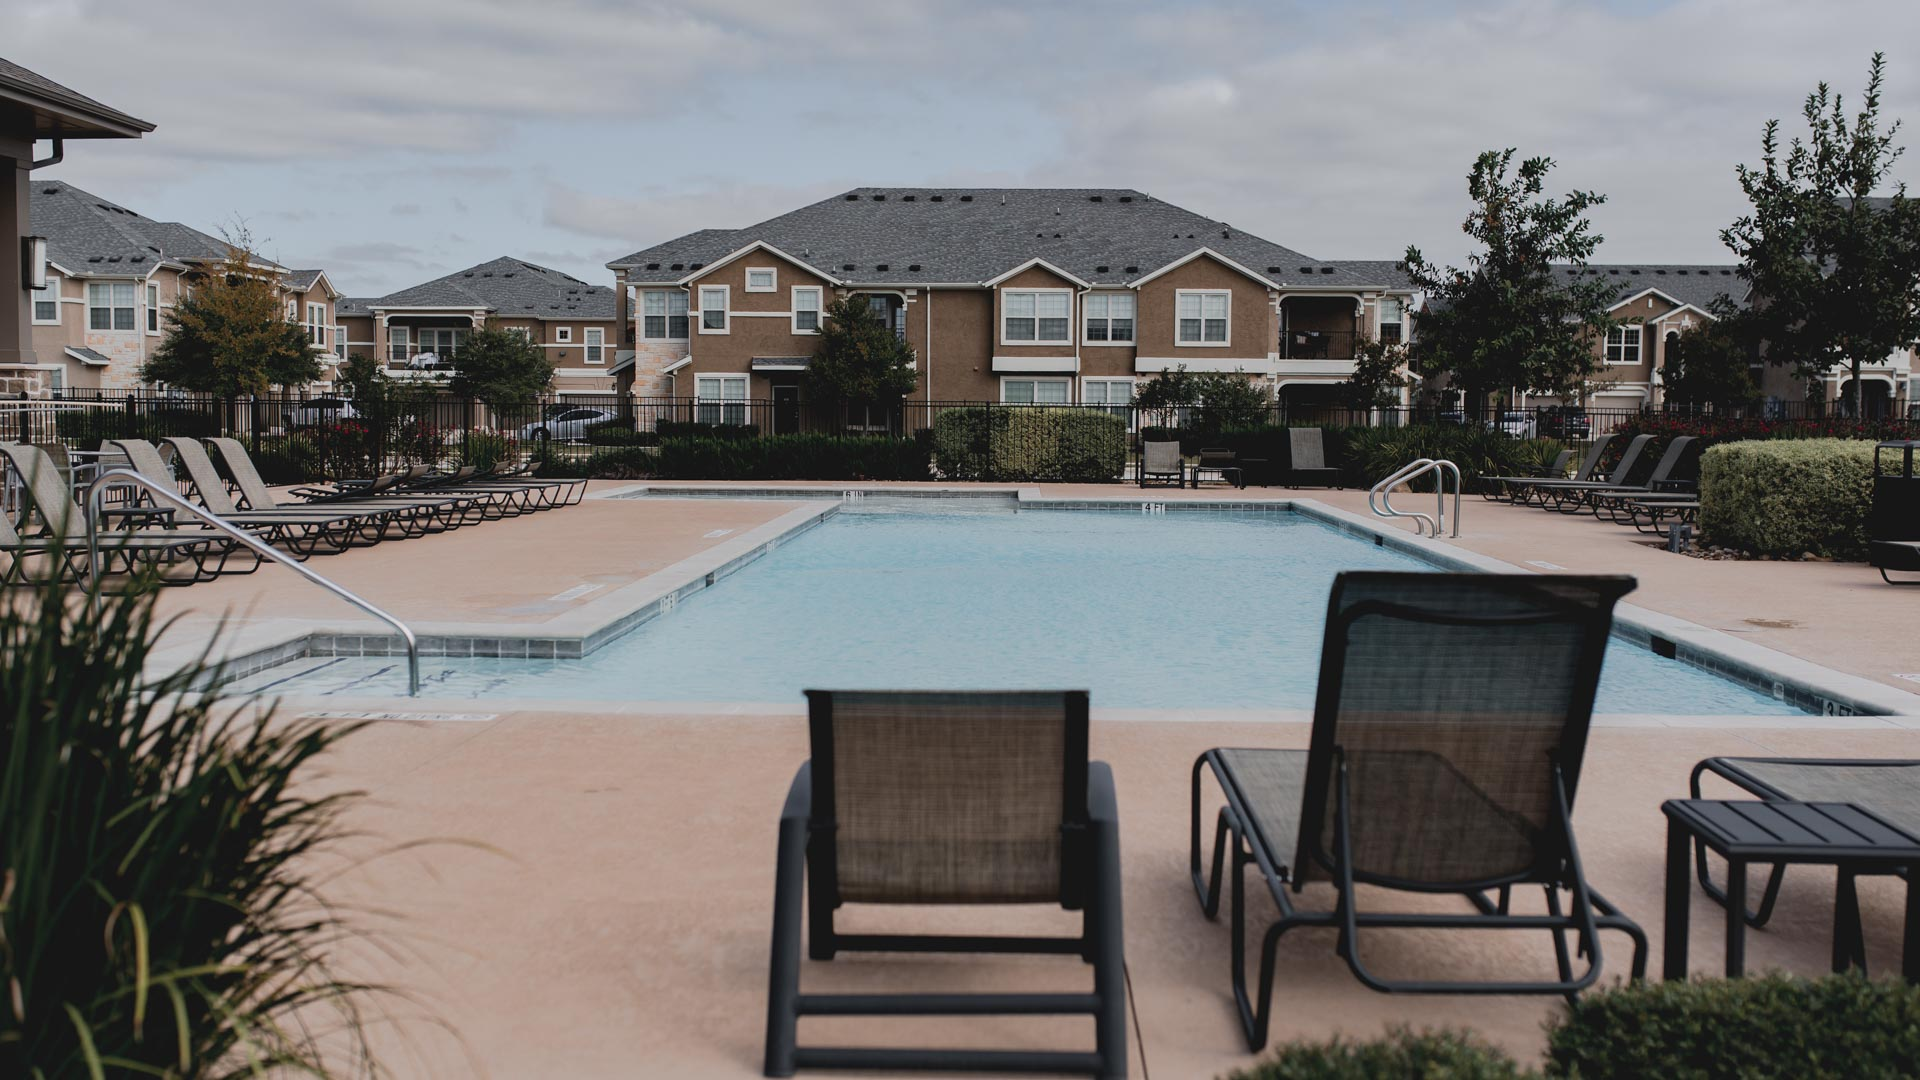 Pool with lounge chairs at Springs at Creekside in New Braunfels, TX